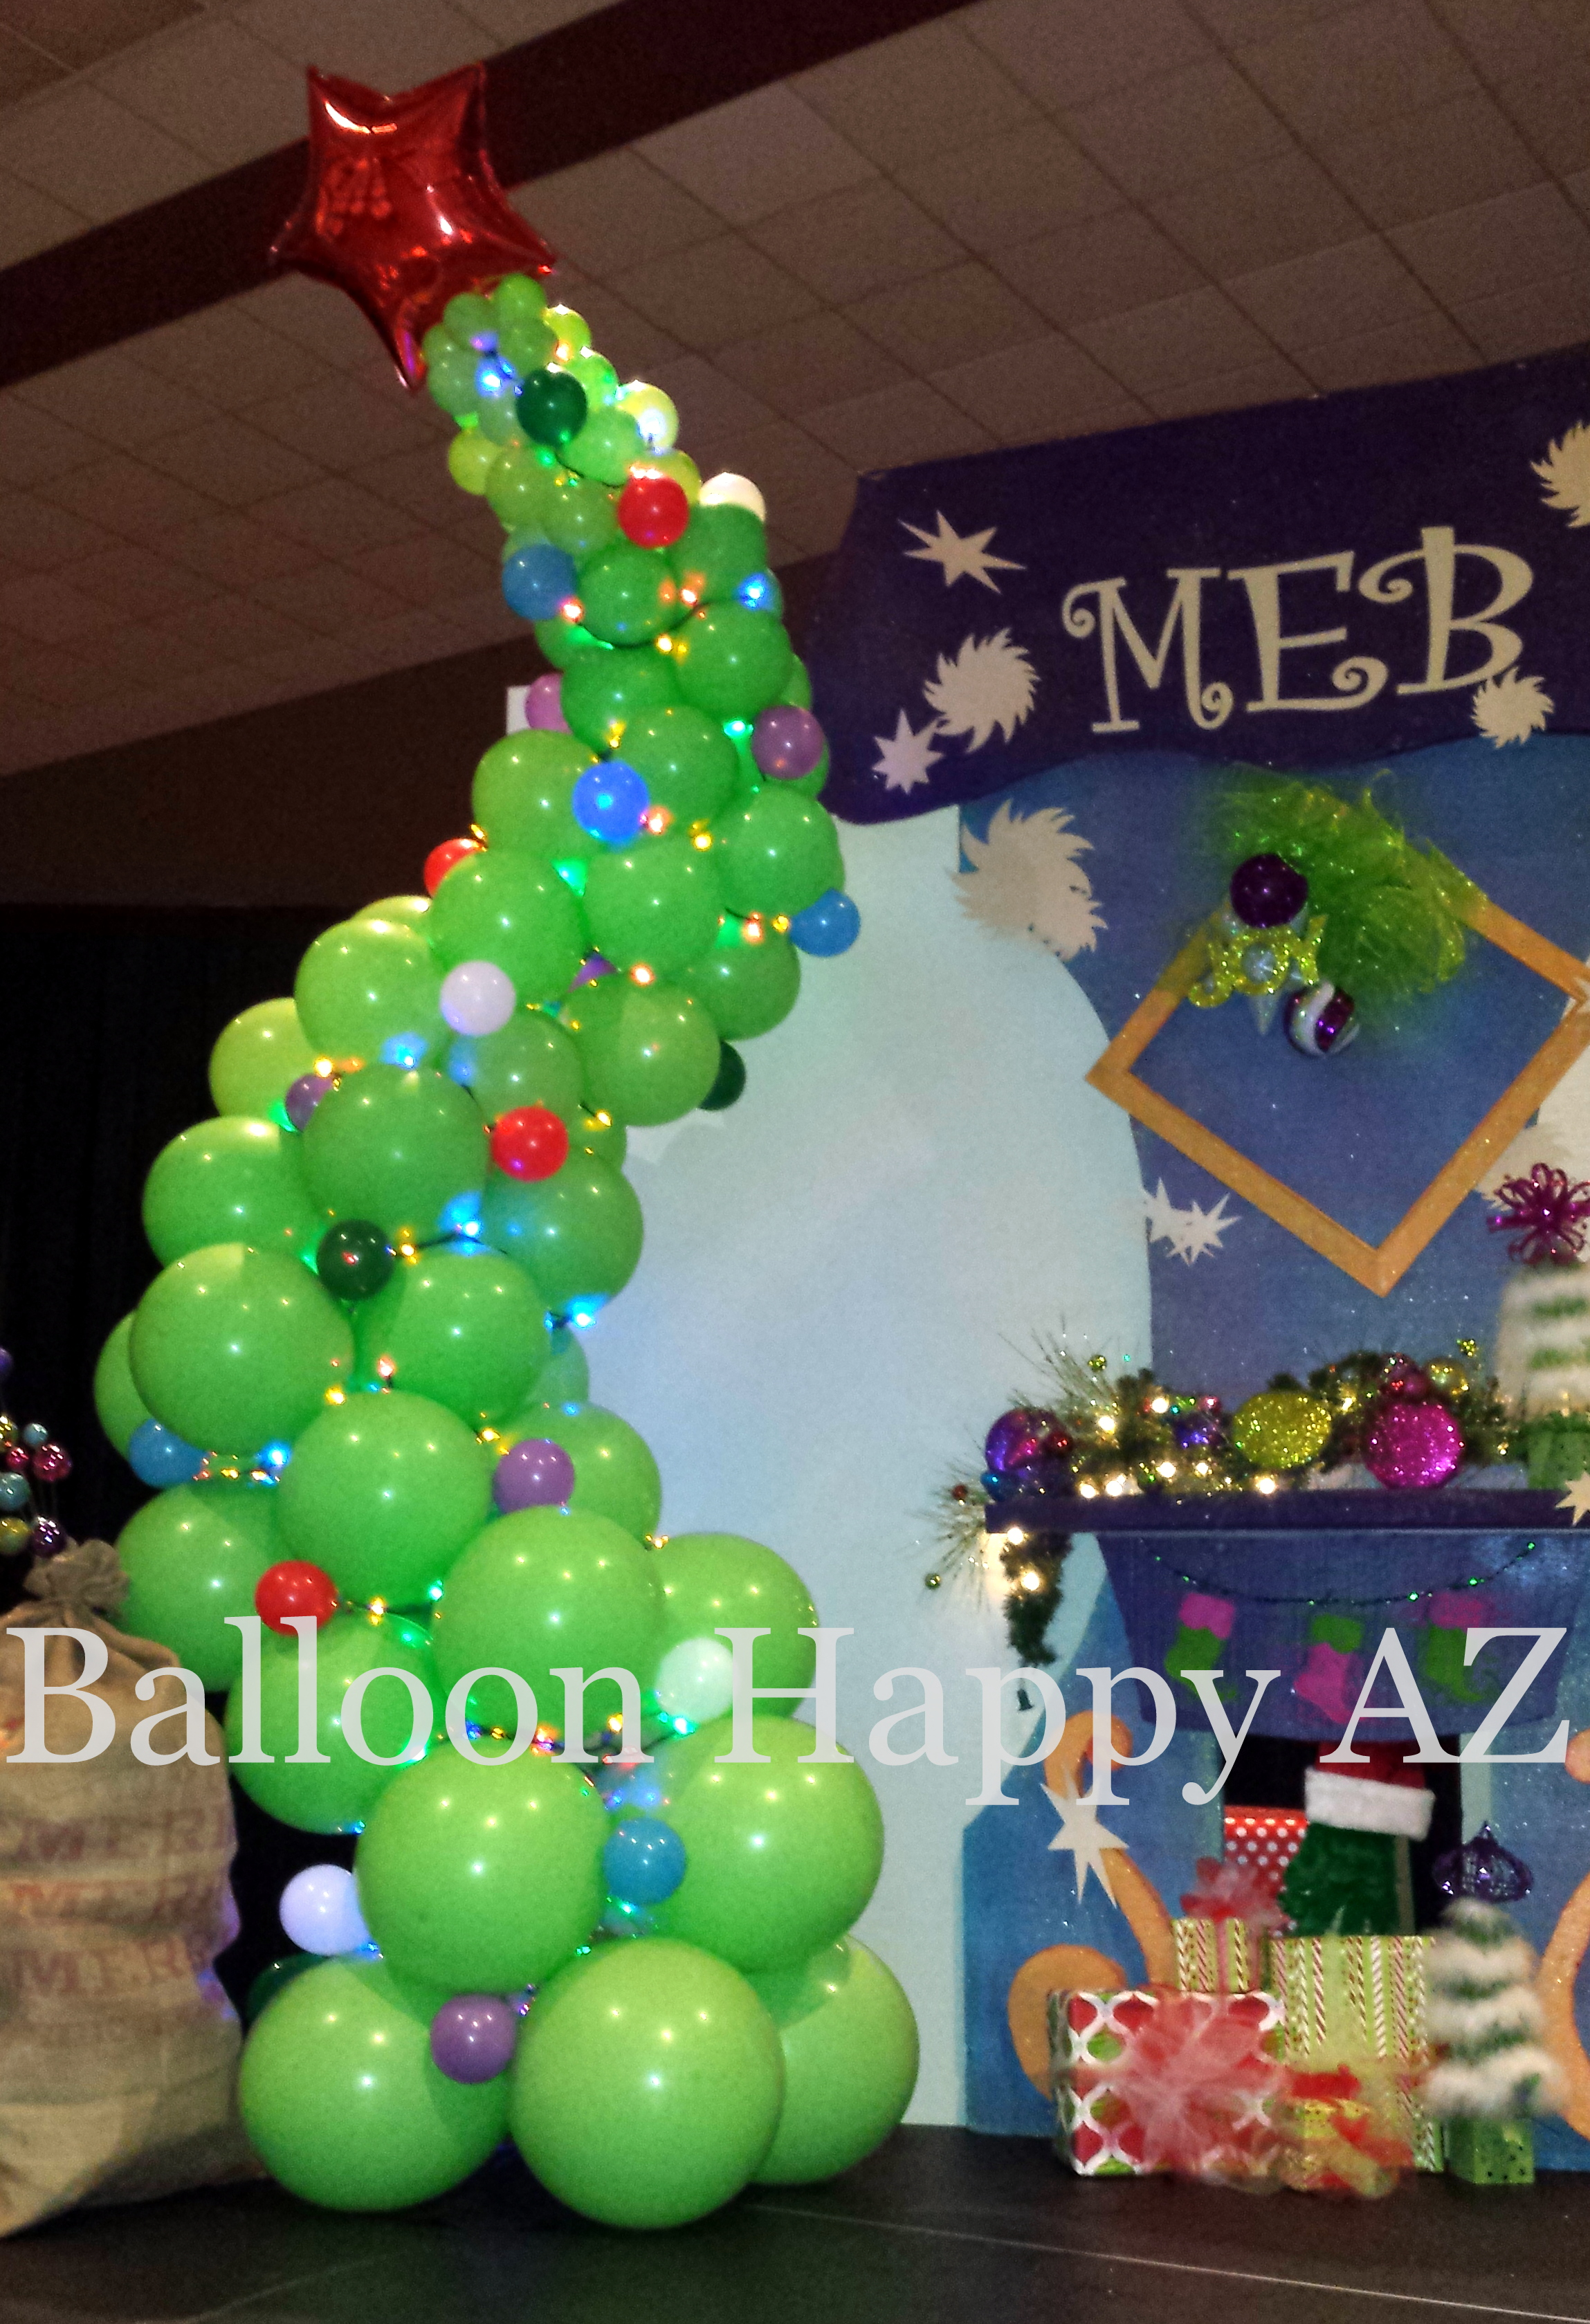 Whoville Christmas Party Ideas Balloonhappyaz Blog   See What Makes